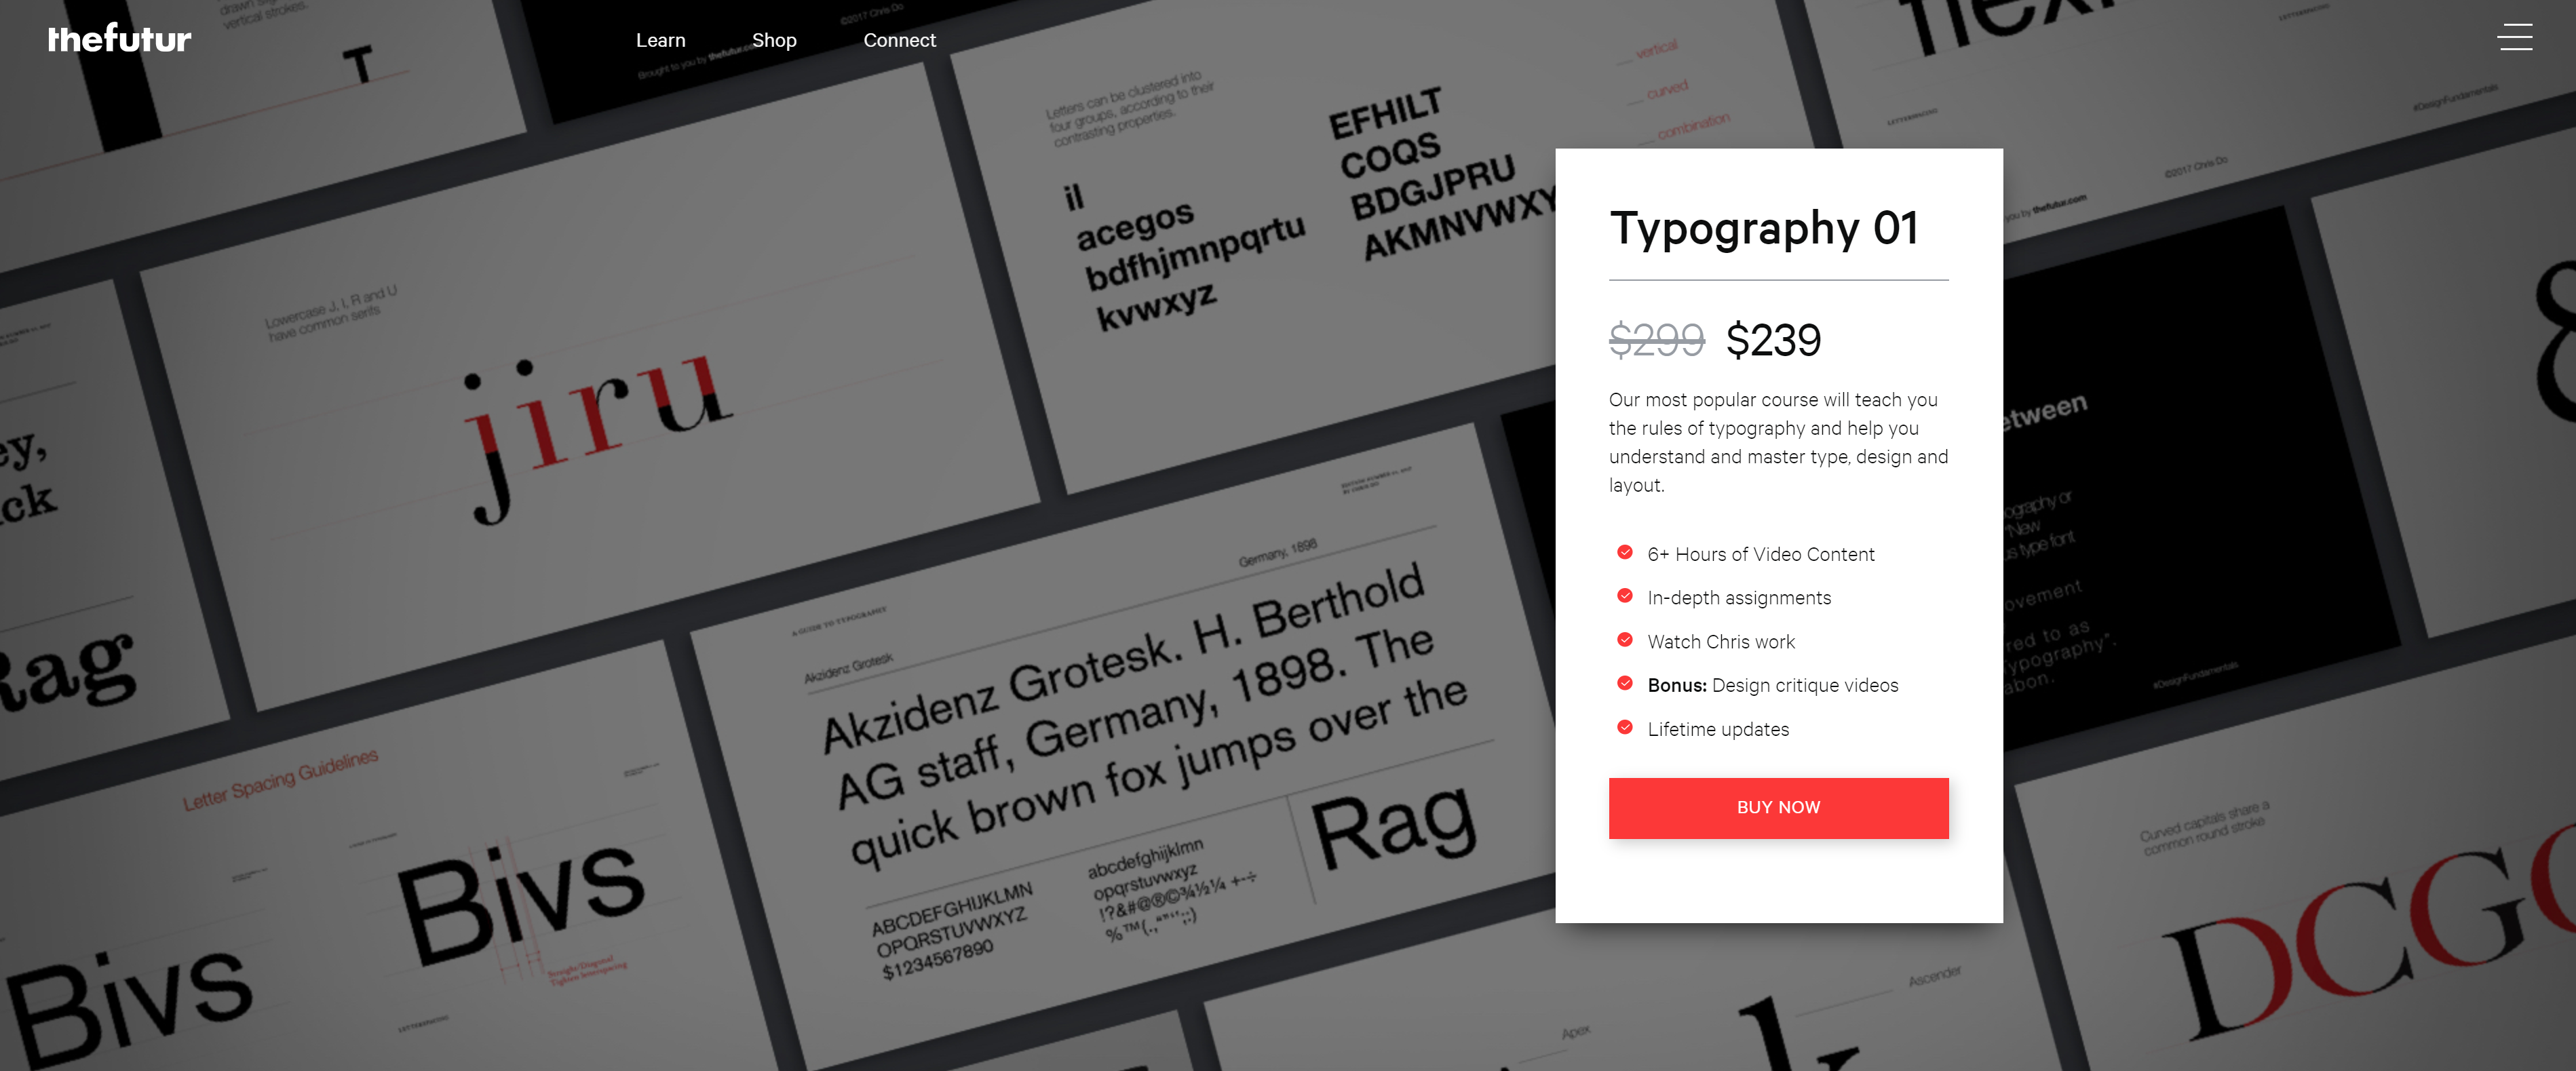 The purchase screen of The Futur's website about a typography course